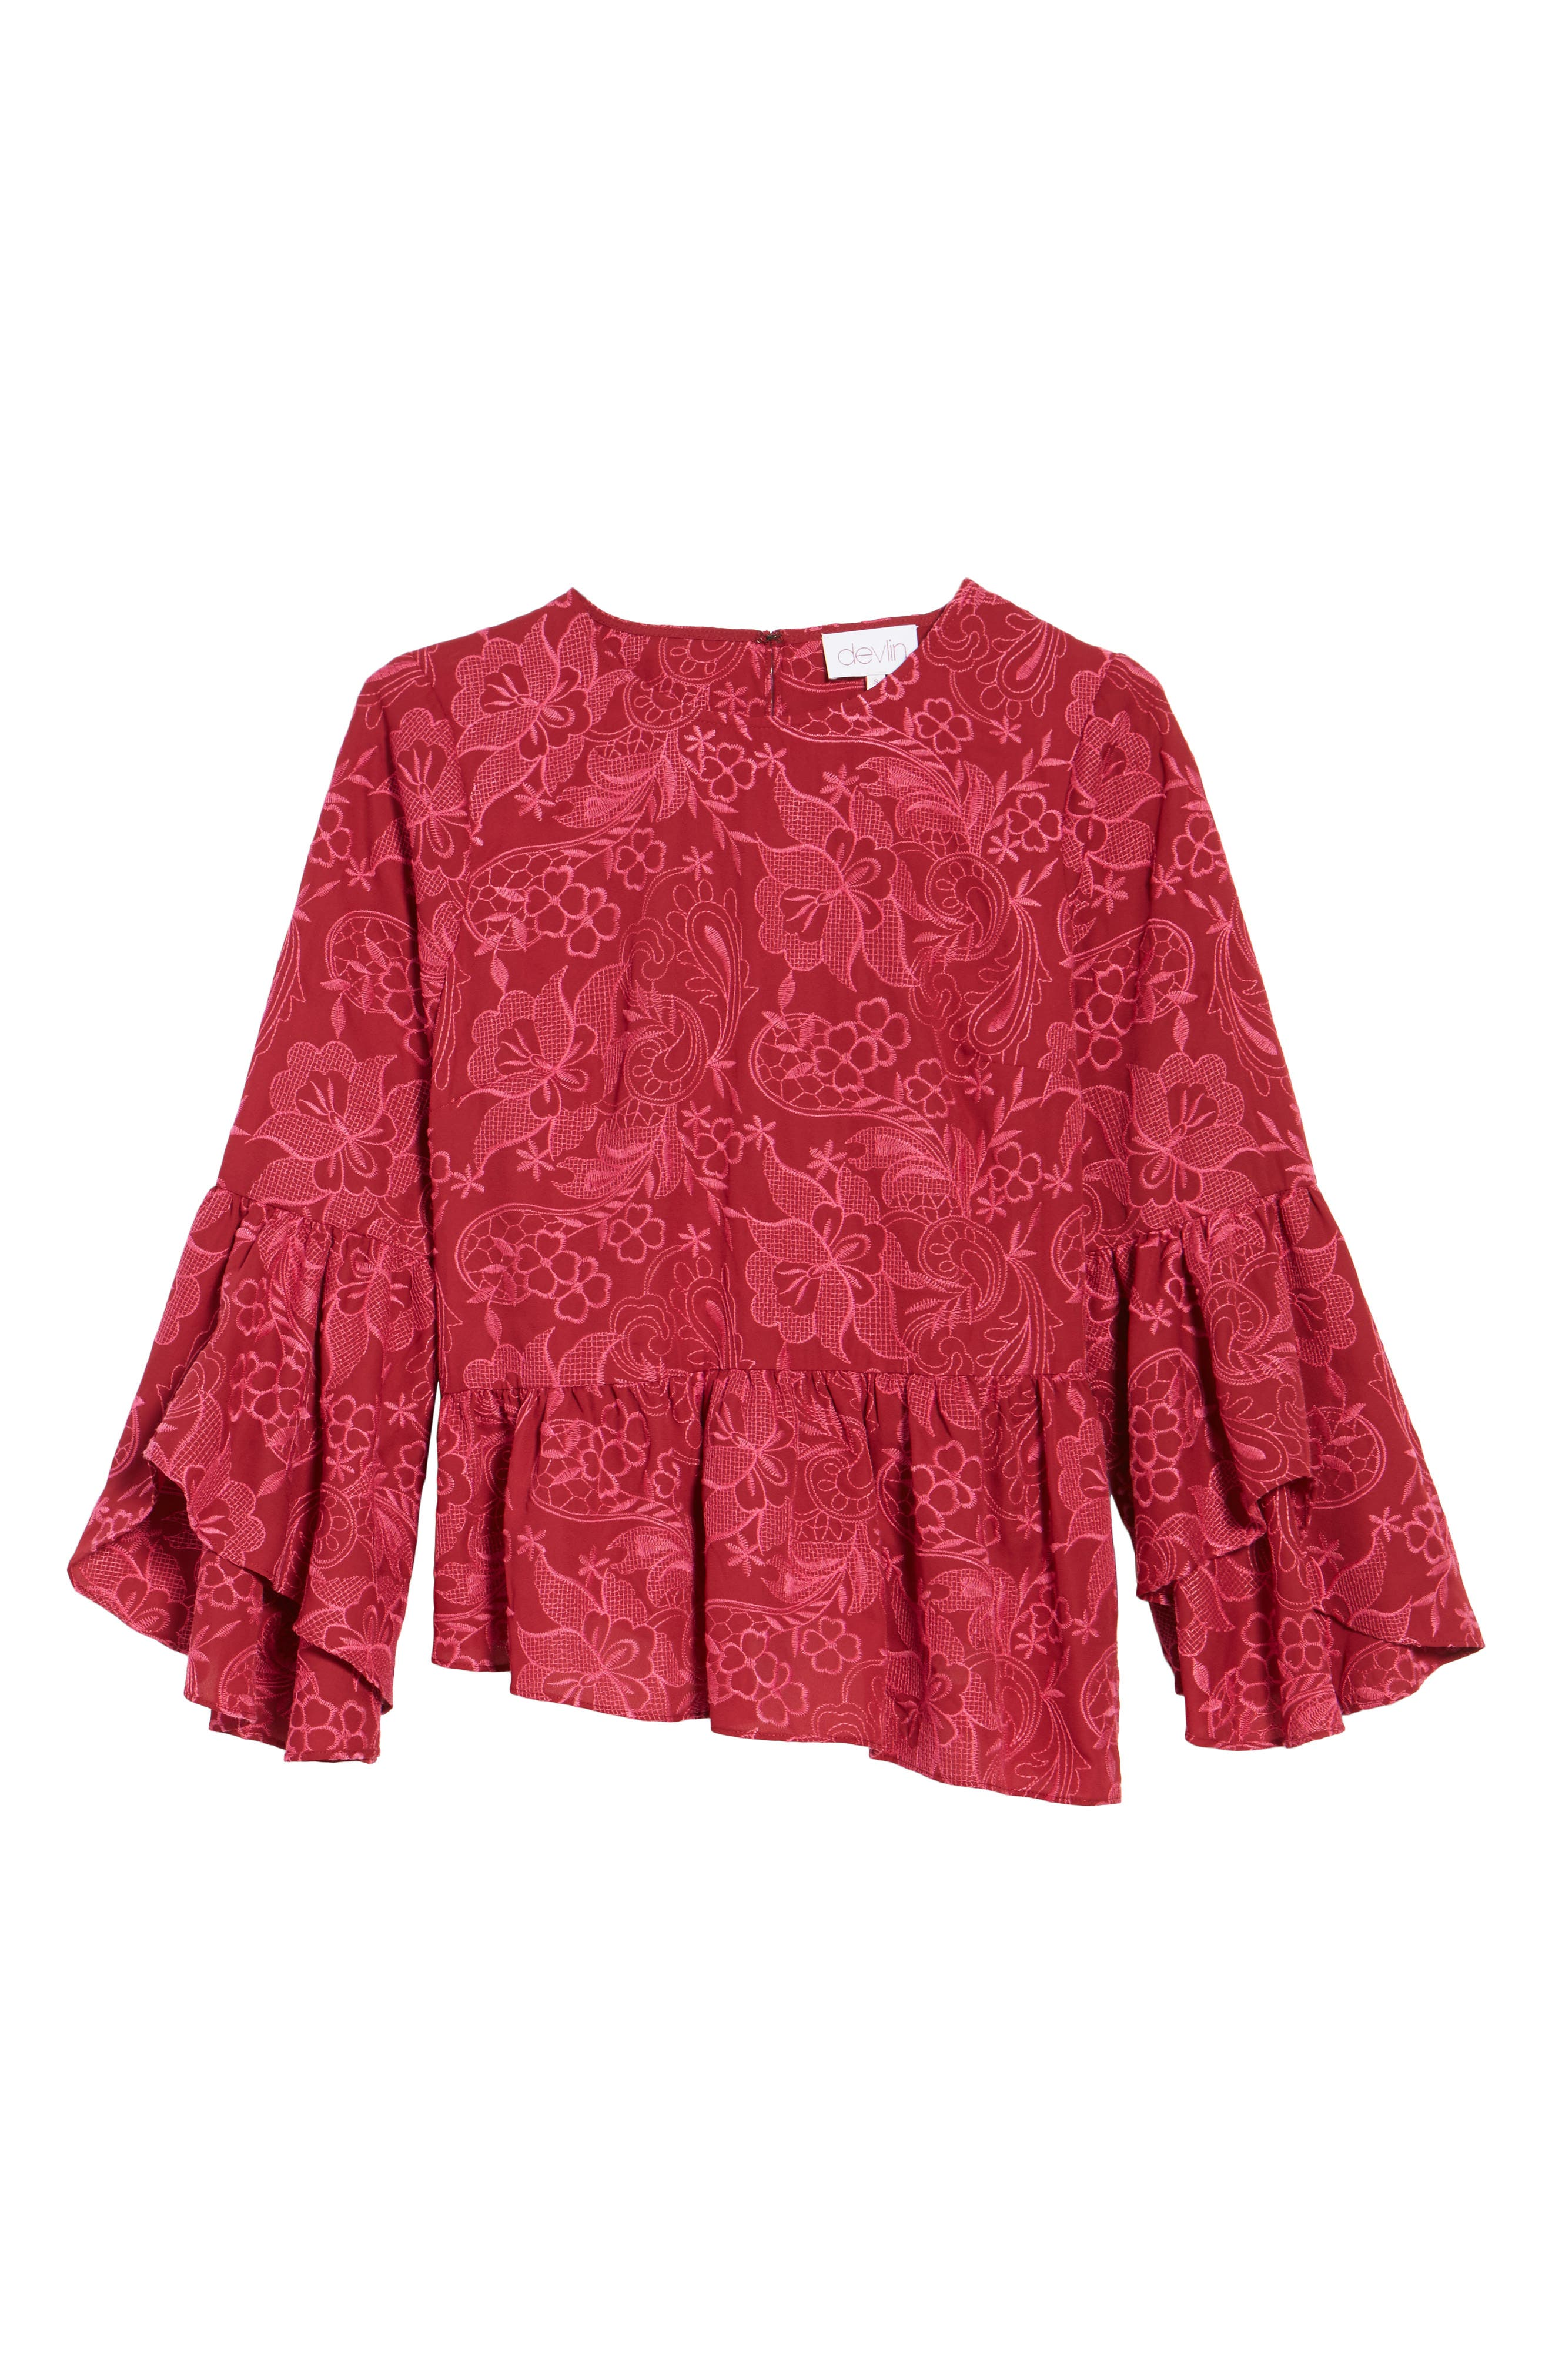 Helena Lace Bell Sleeve Top,                             Alternate thumbnail 6, color,                             400